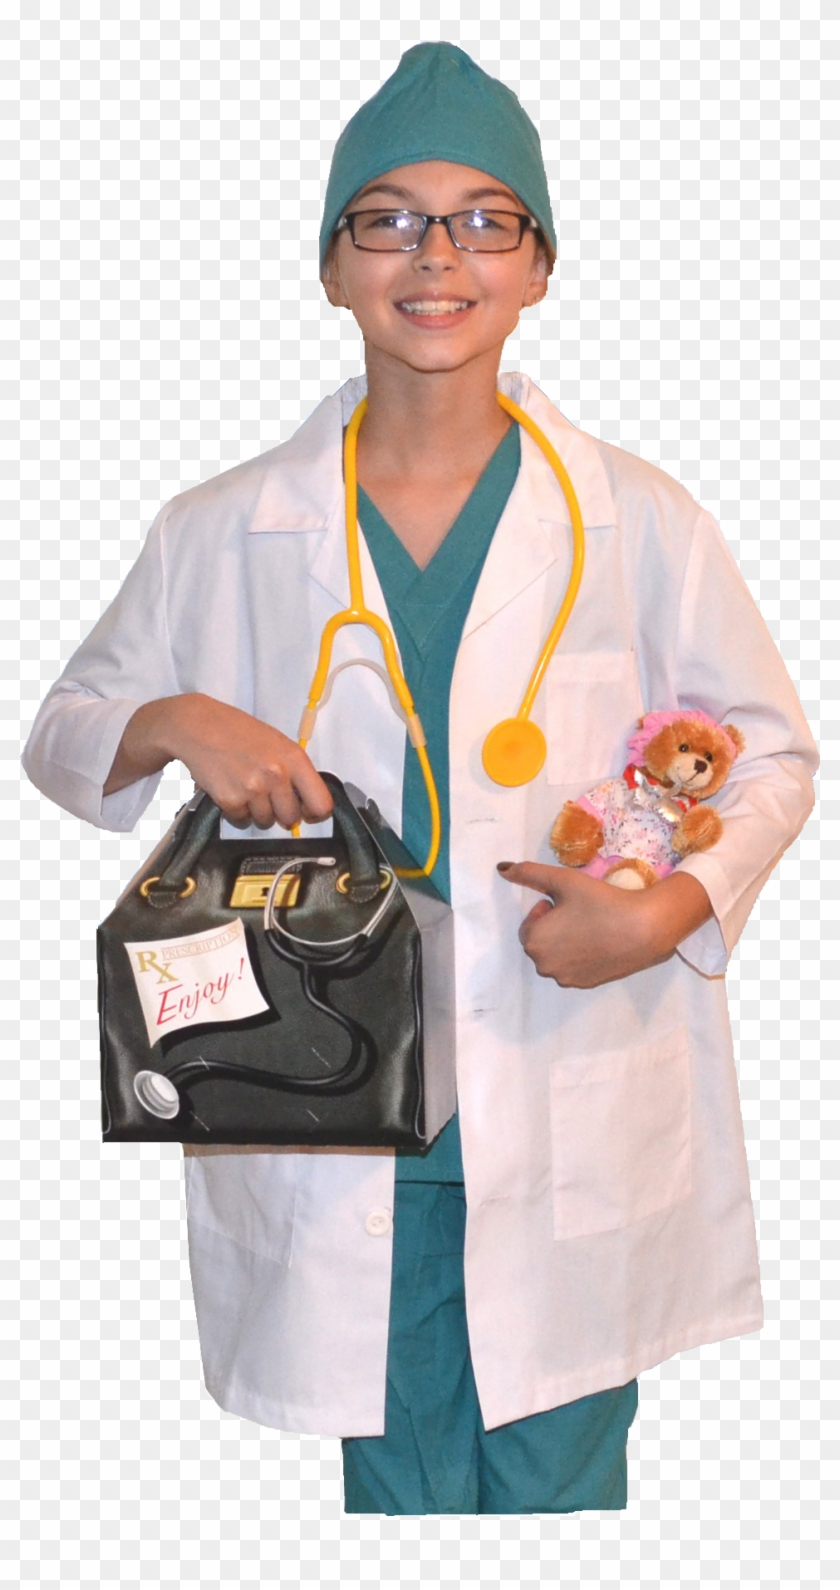 com introduces authentic doctor costumes for kids doctor costume